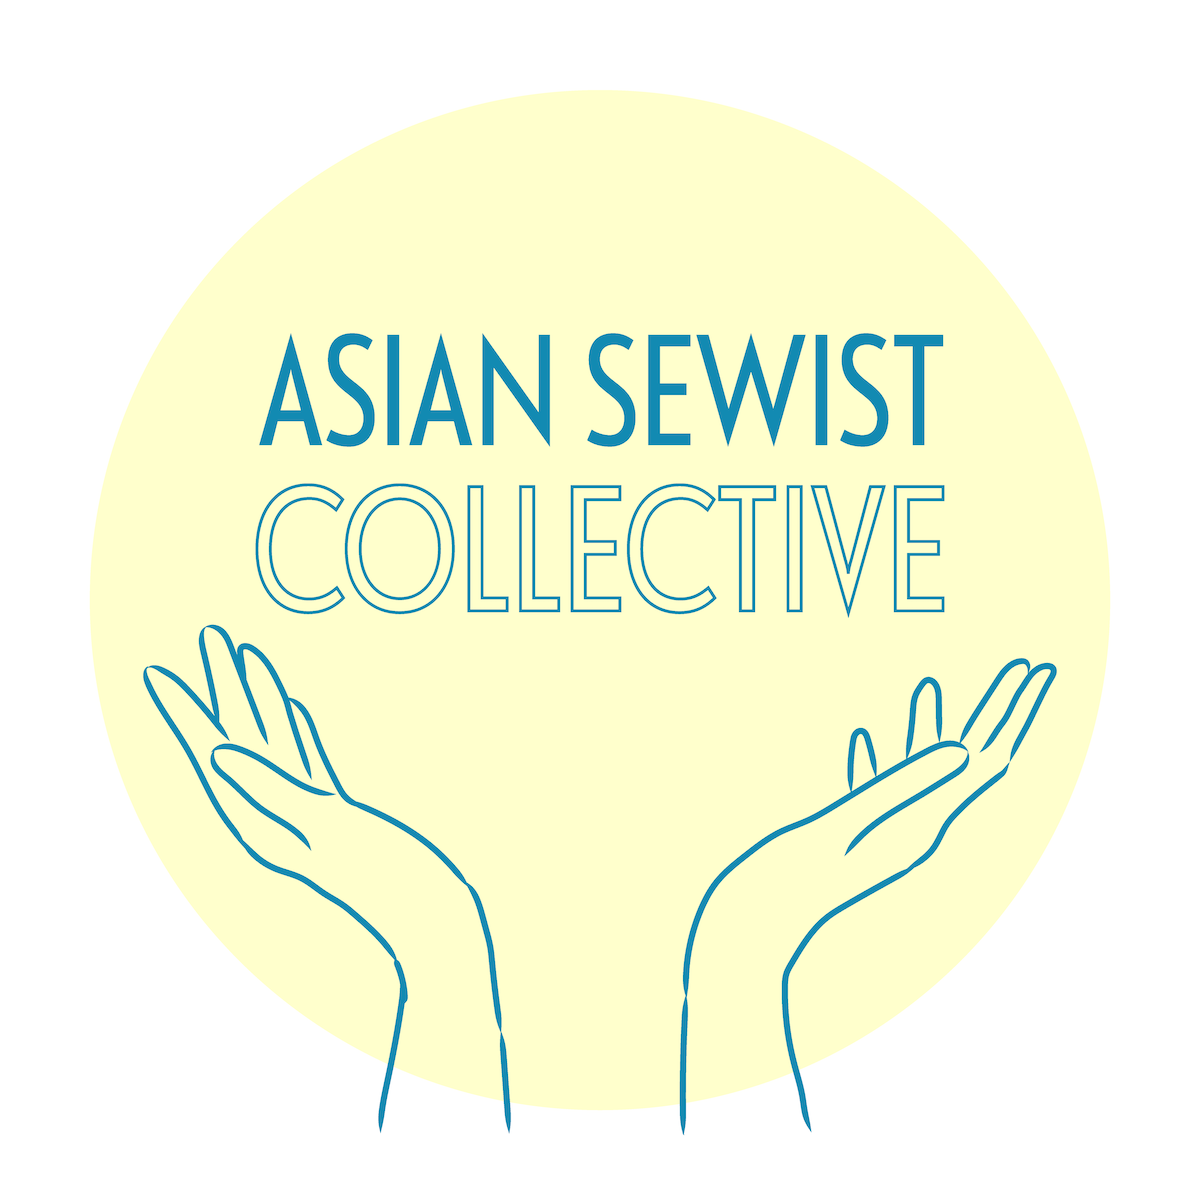 Asian Sewist Collective logo